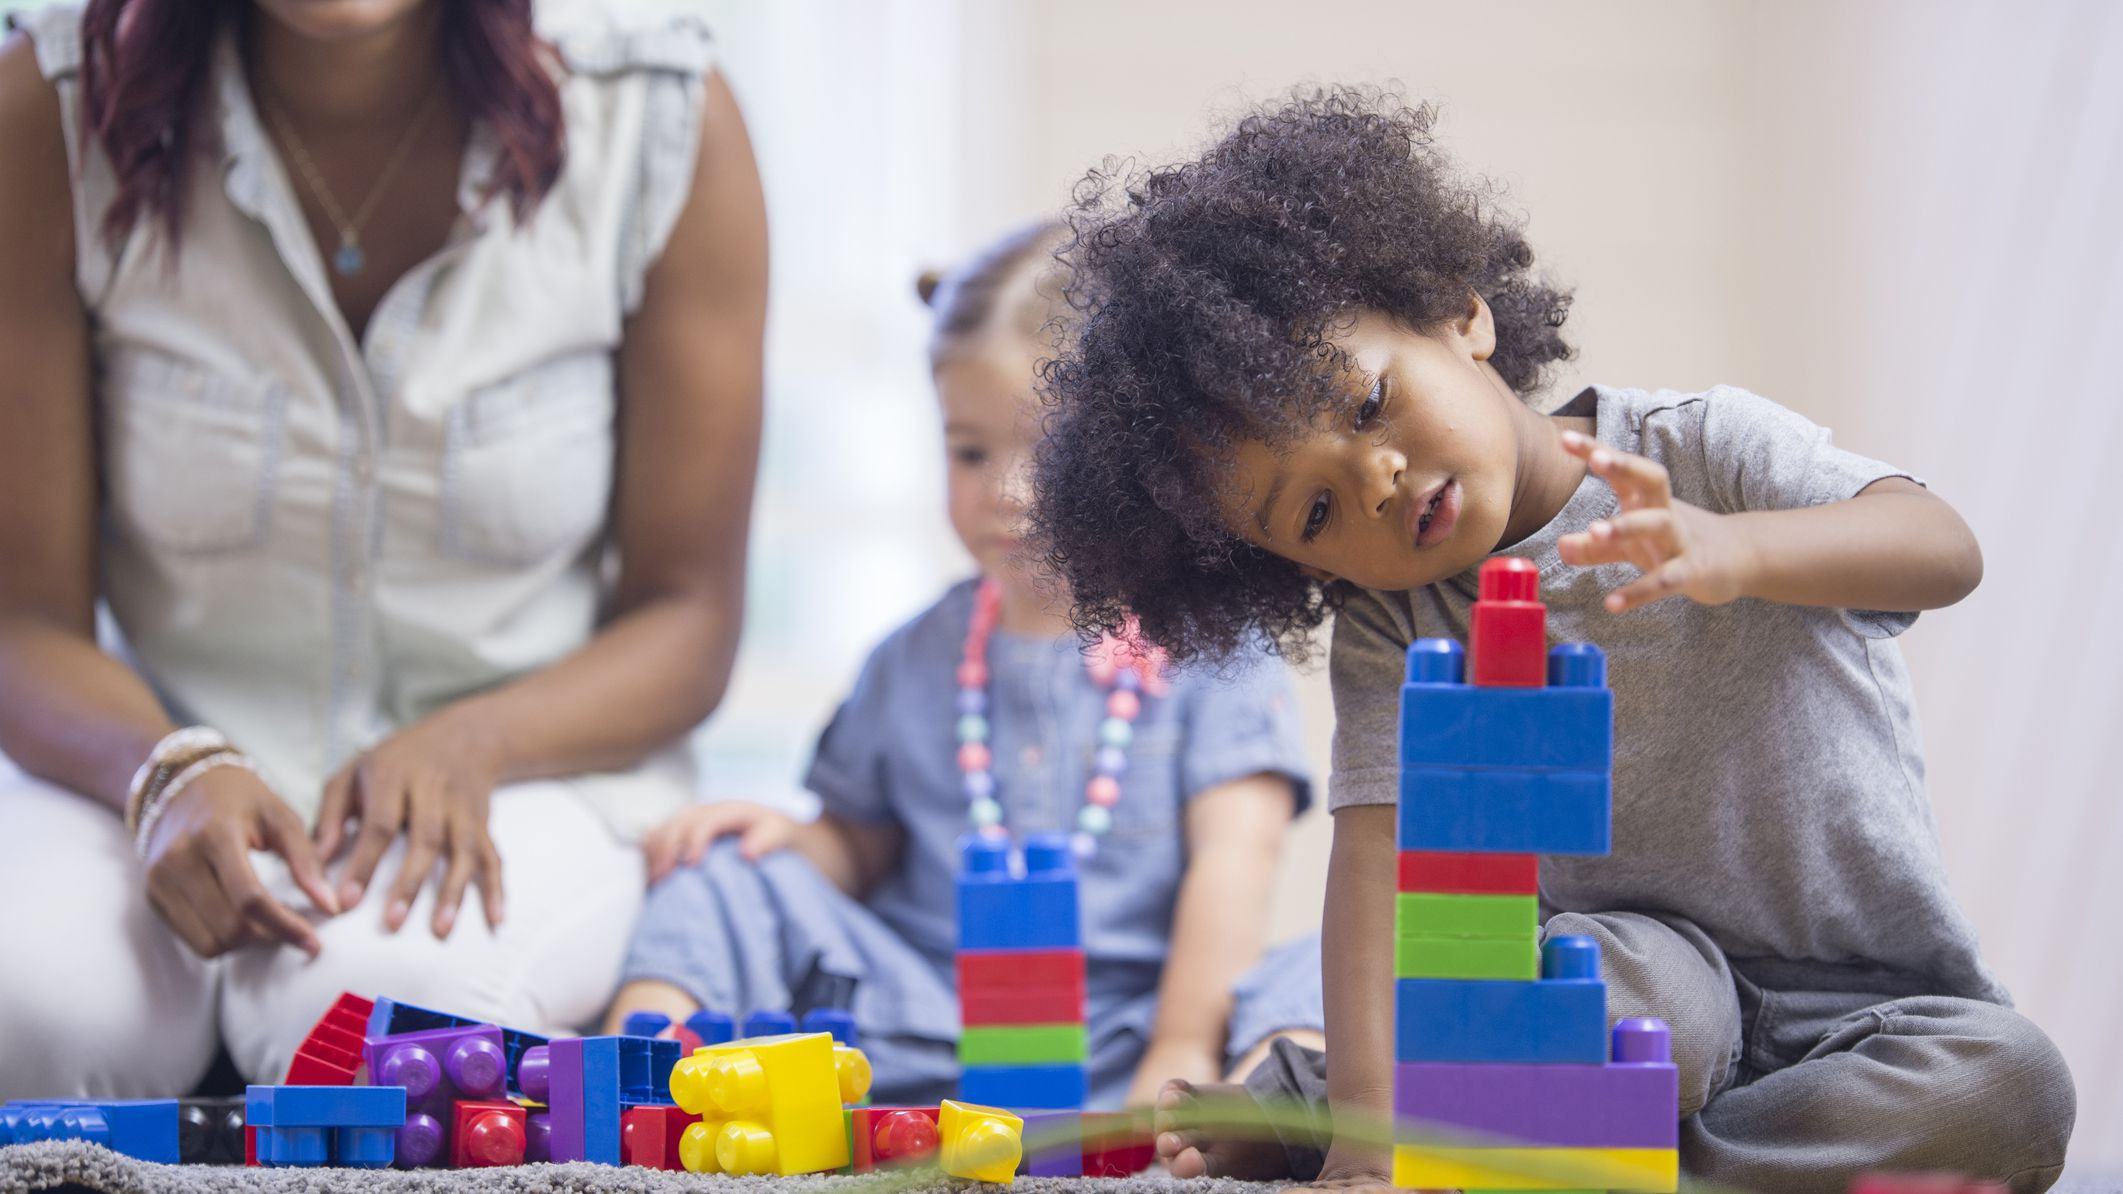 How Parents Can Encourage Constructive Play in Toddlers